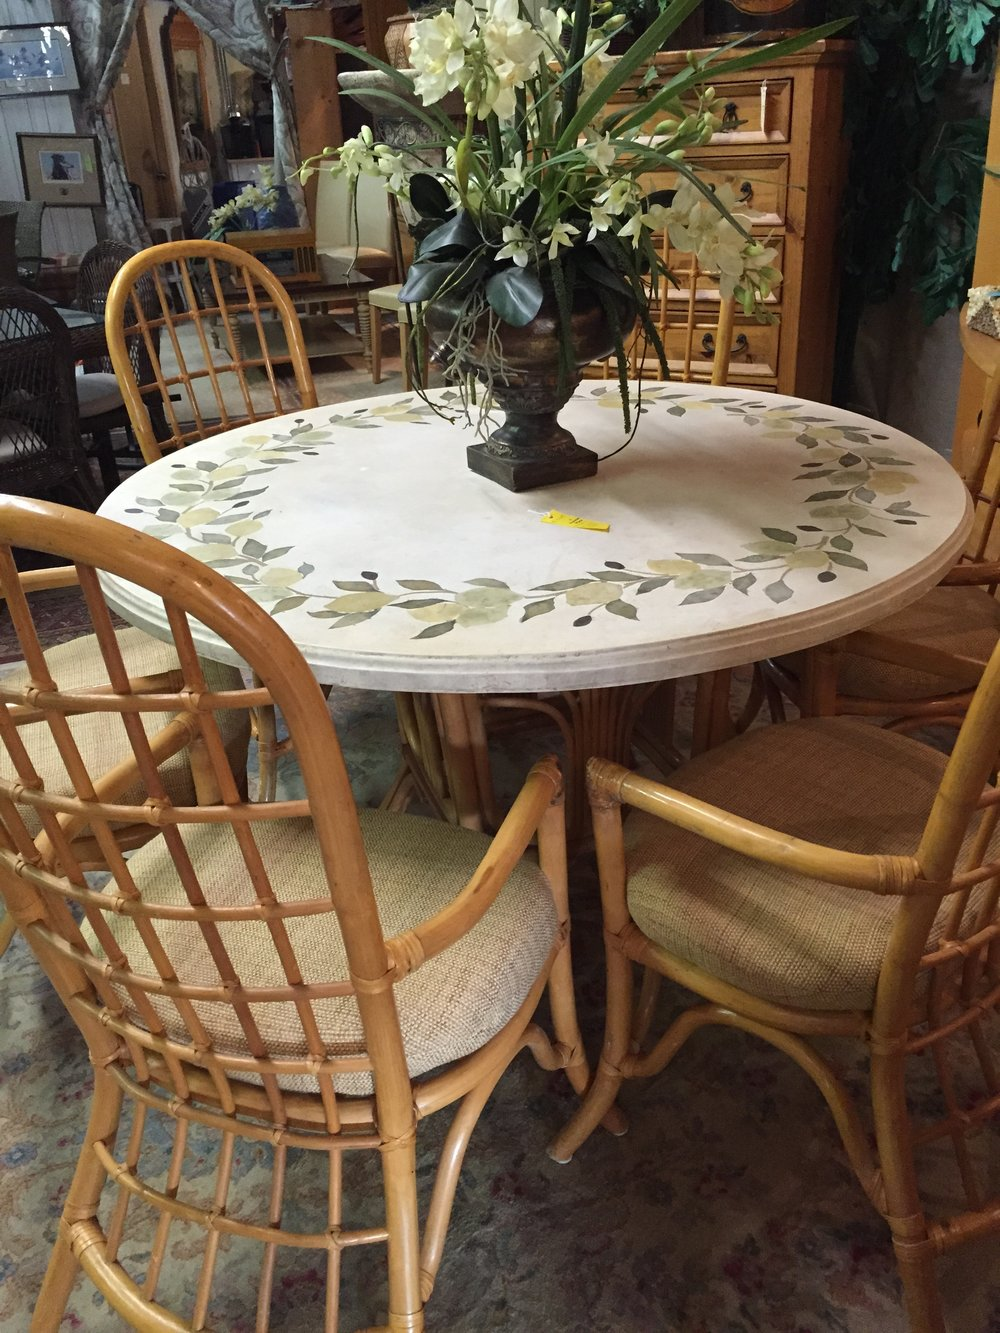 A Summer Place Consignments